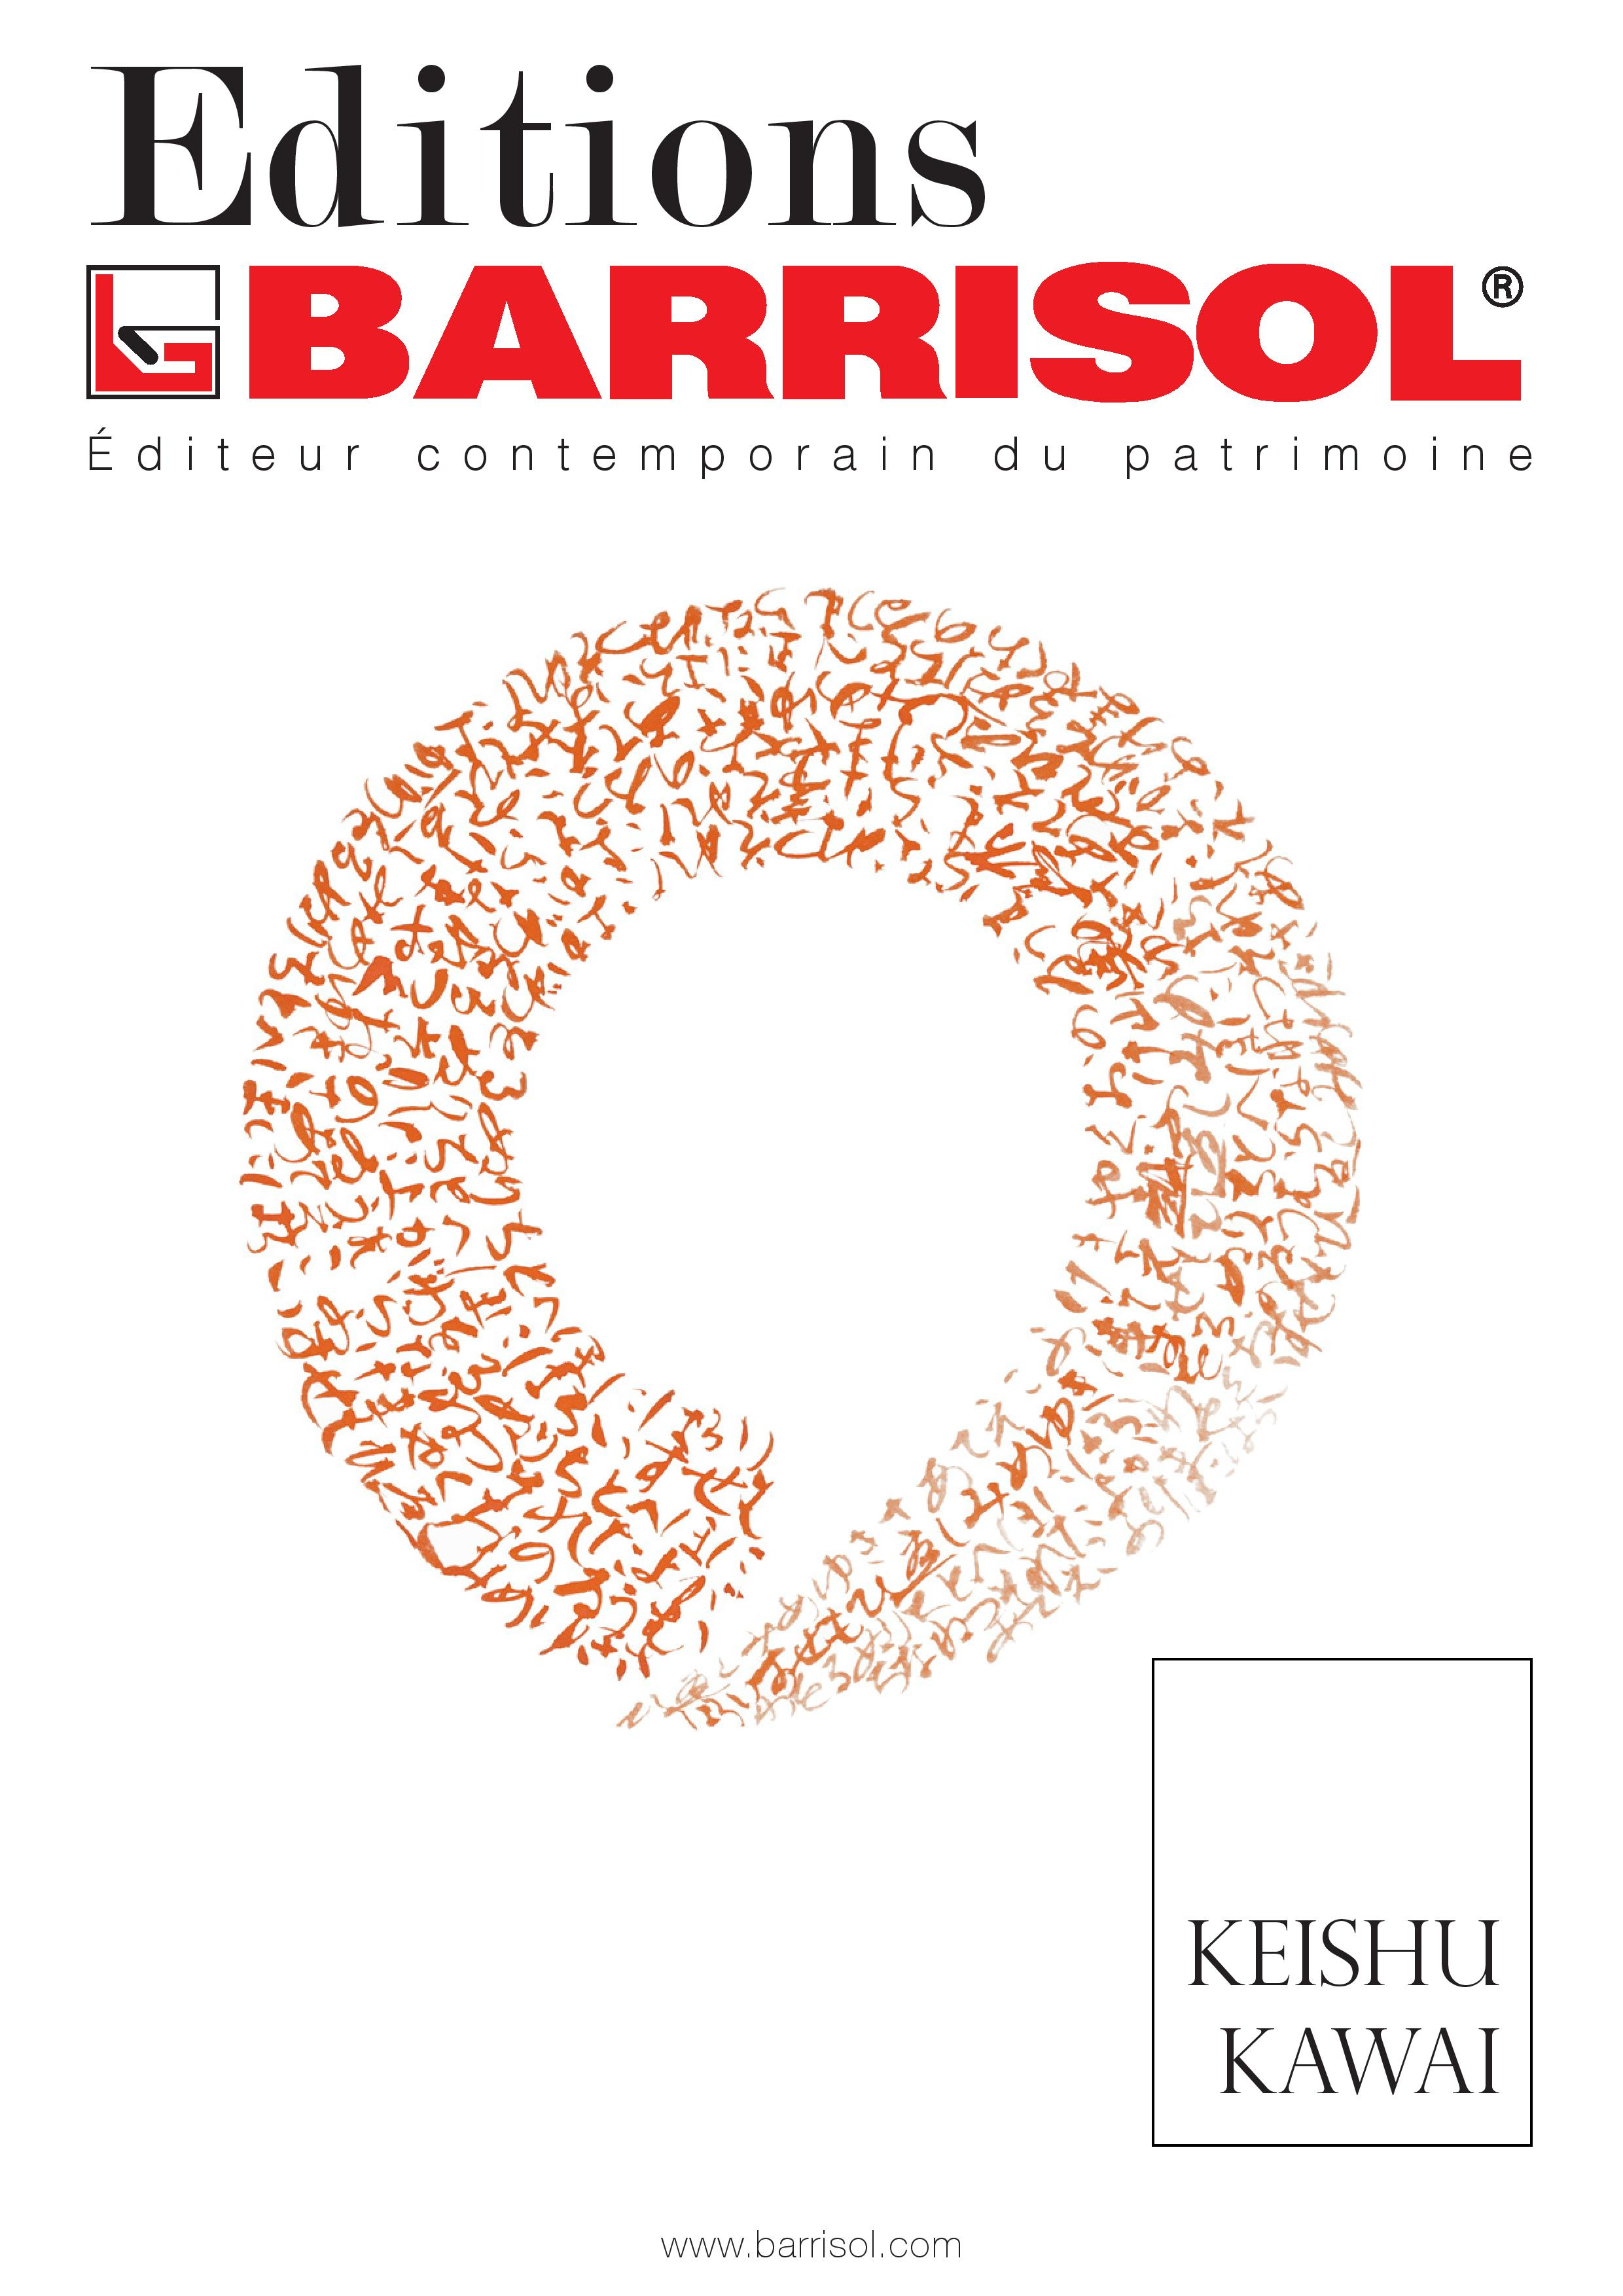 Editions BARRISOL - Catalogue Keishu Kawai